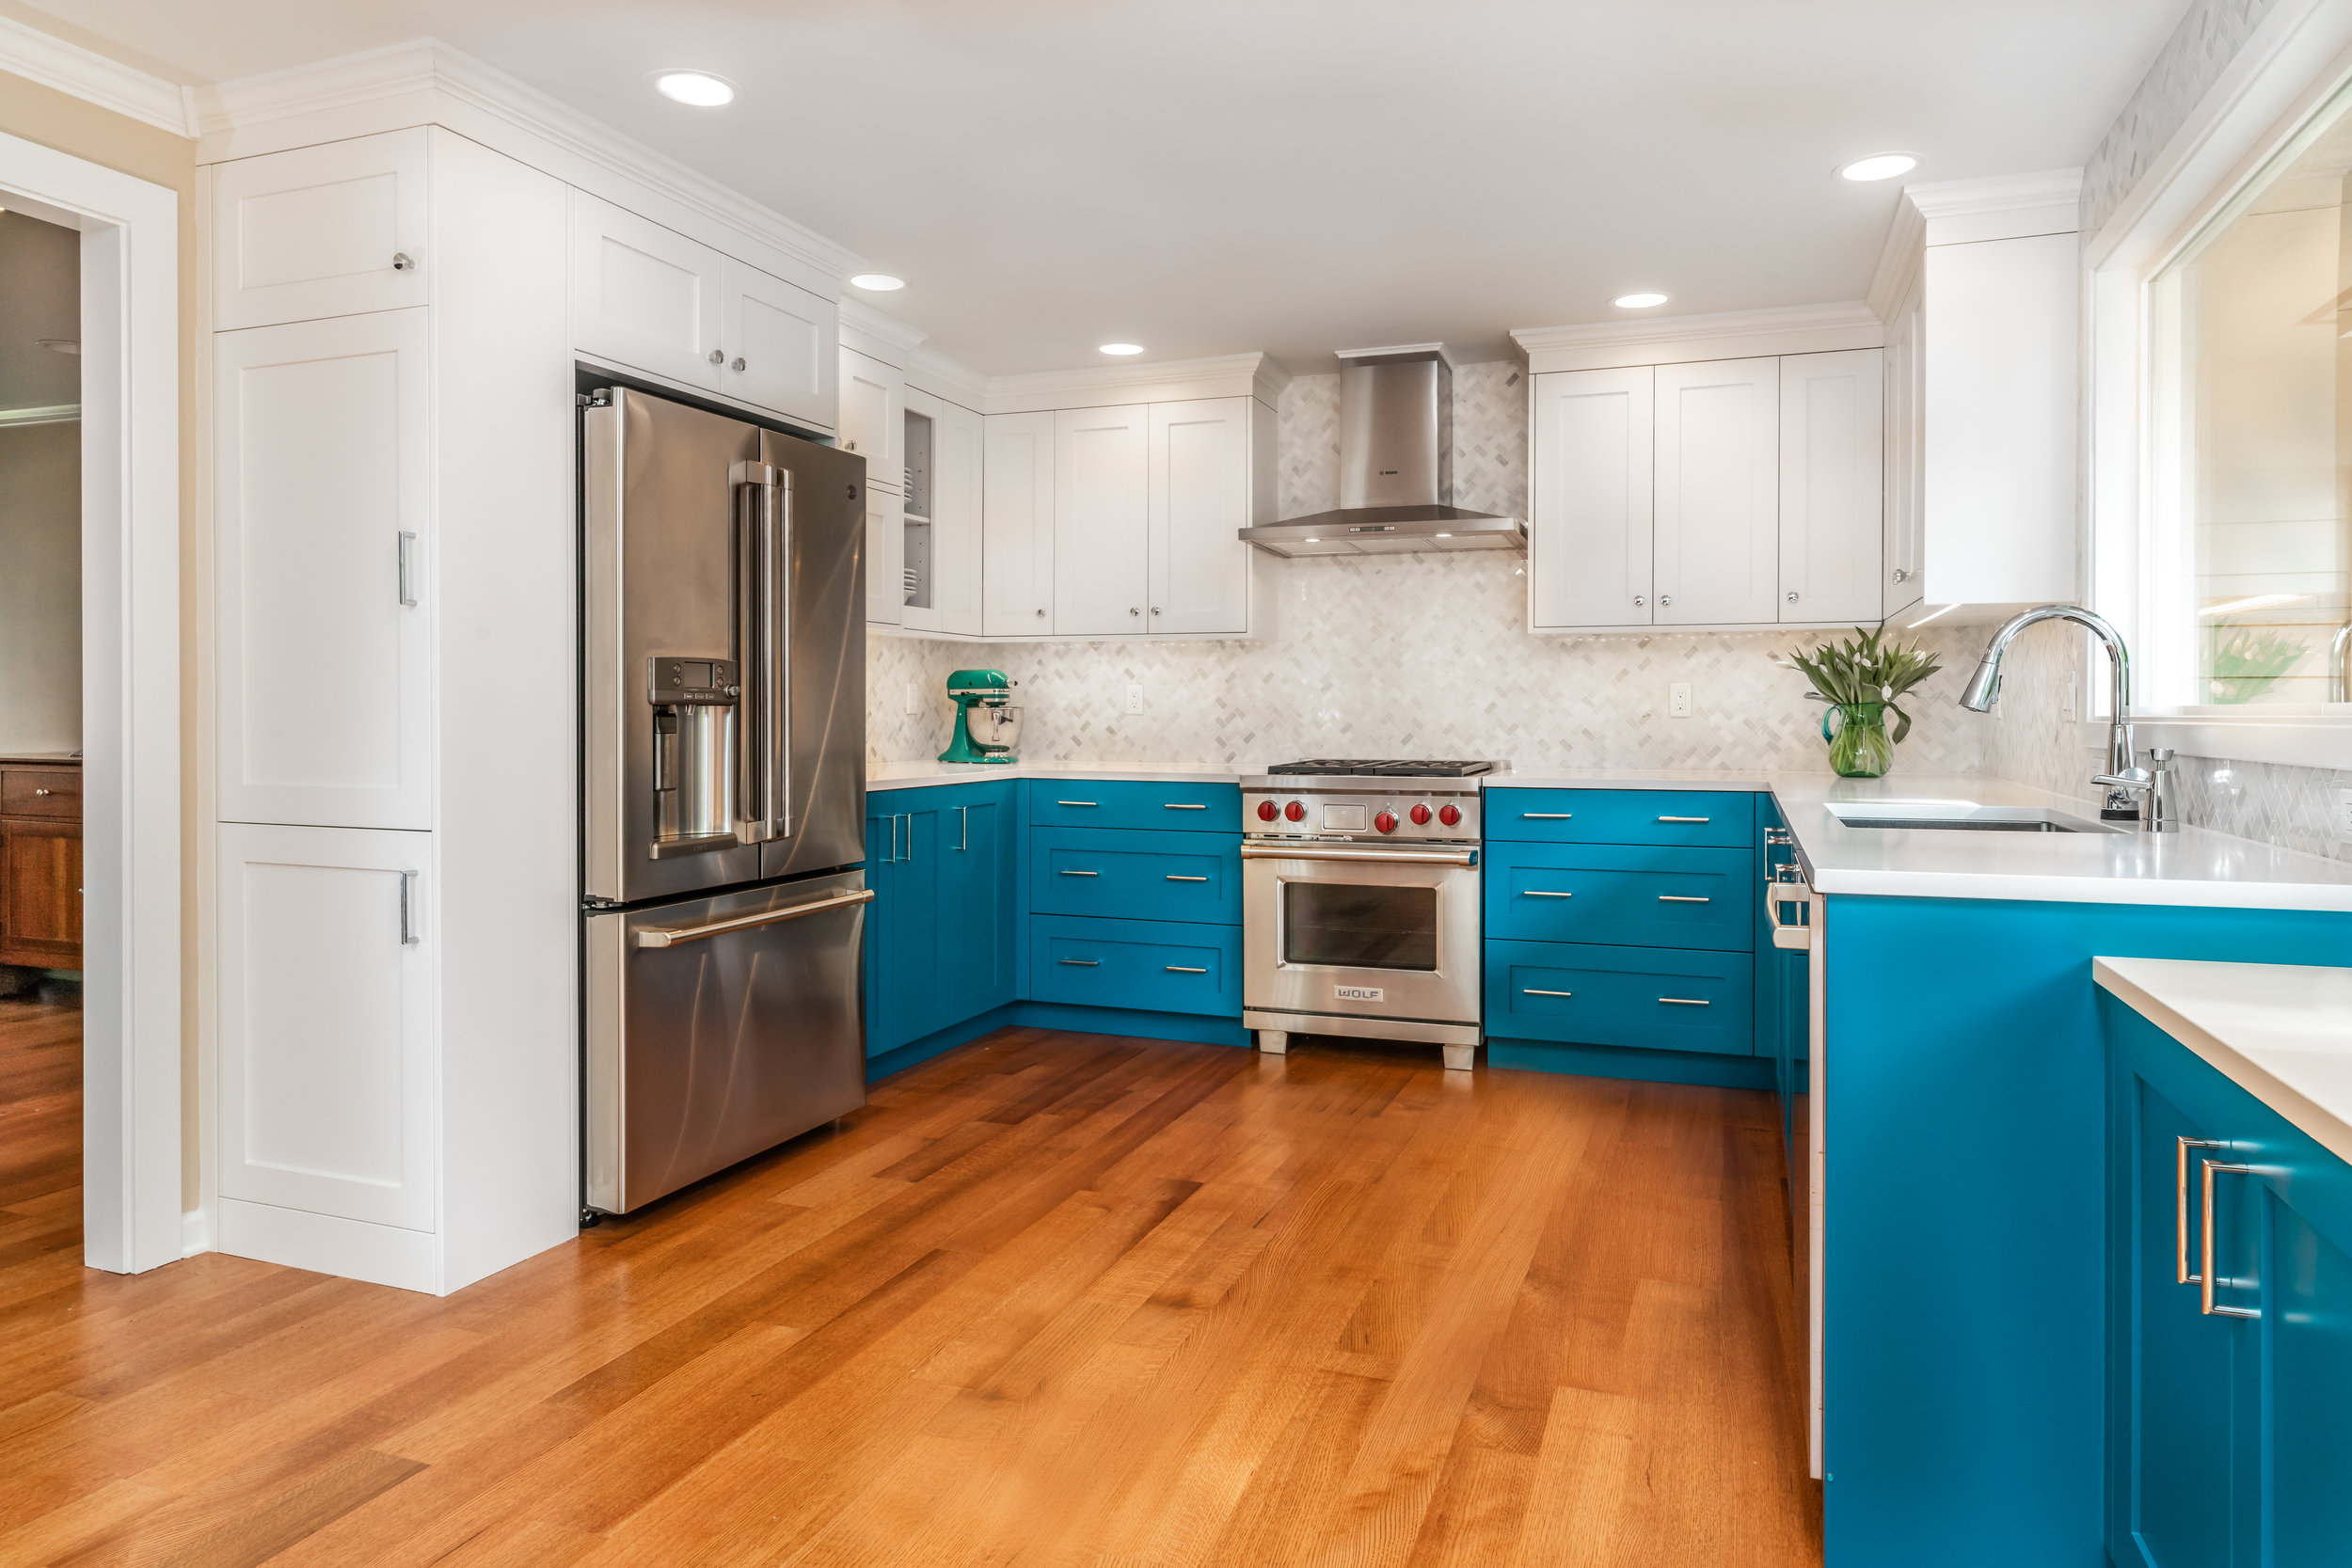 fixed-RiddleConstruction_Sulc_Kitchen_High_Res-5.jpg